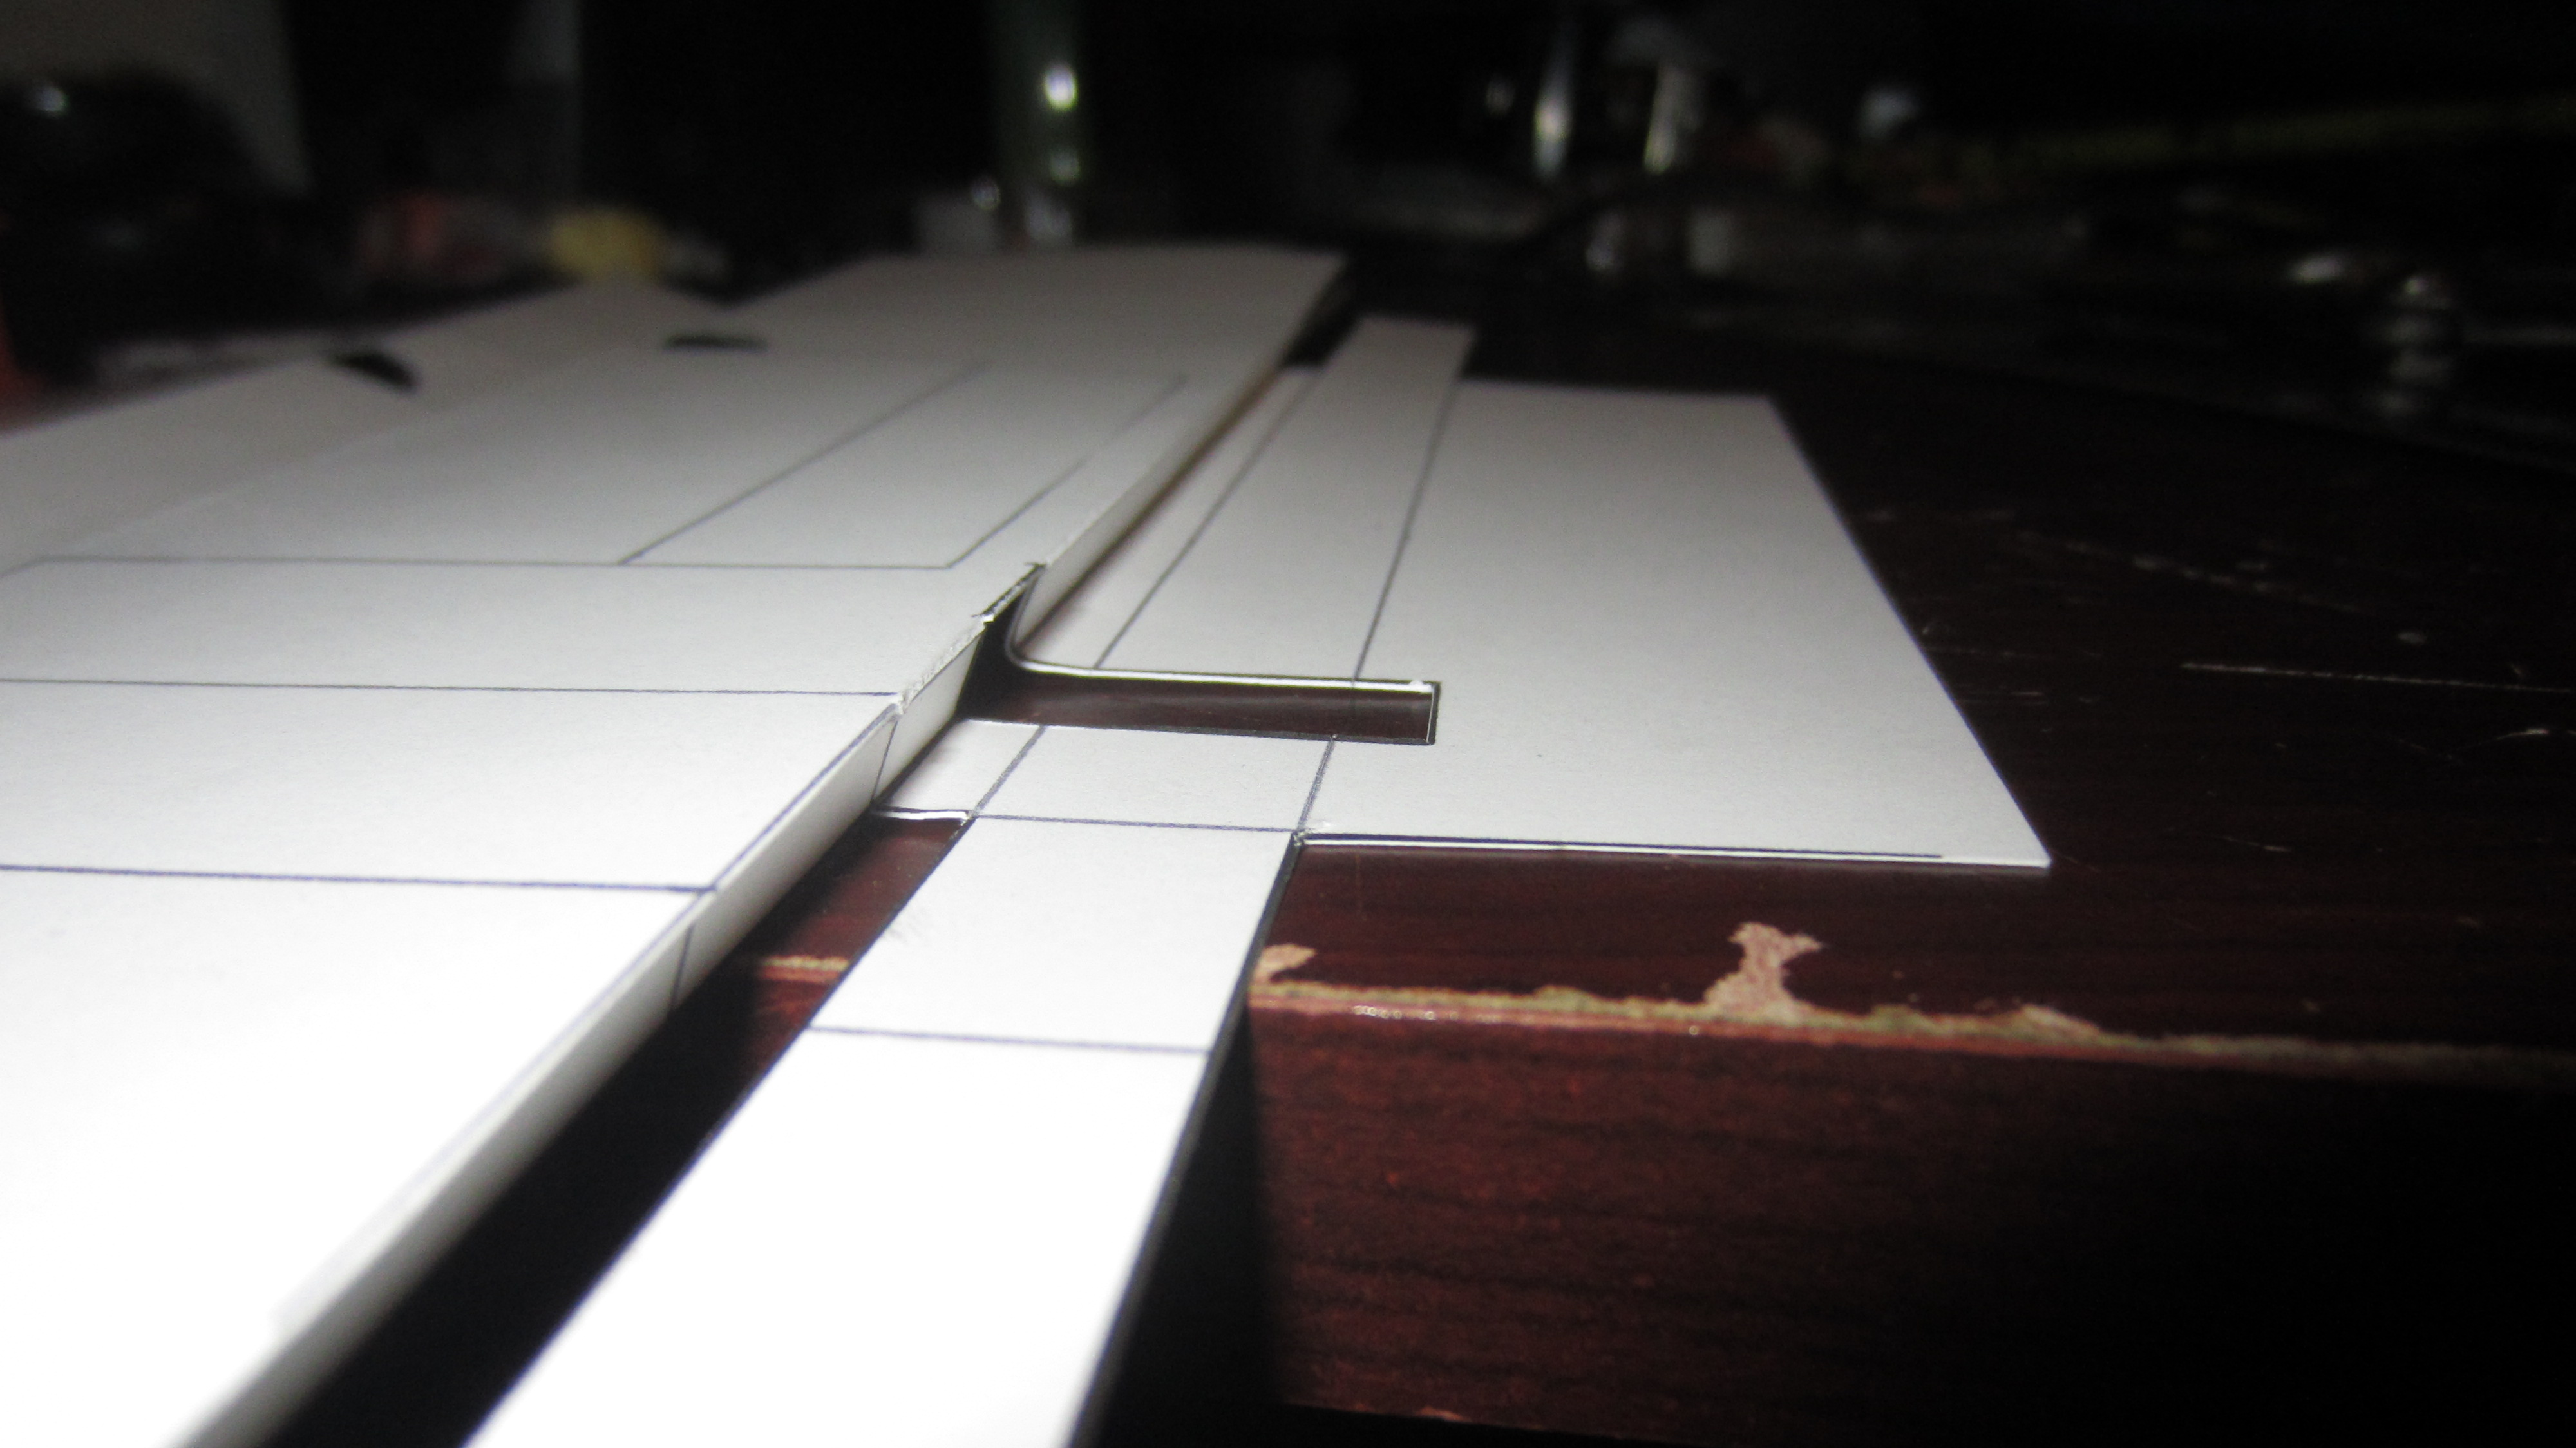 Picture of The Insert: the Sides